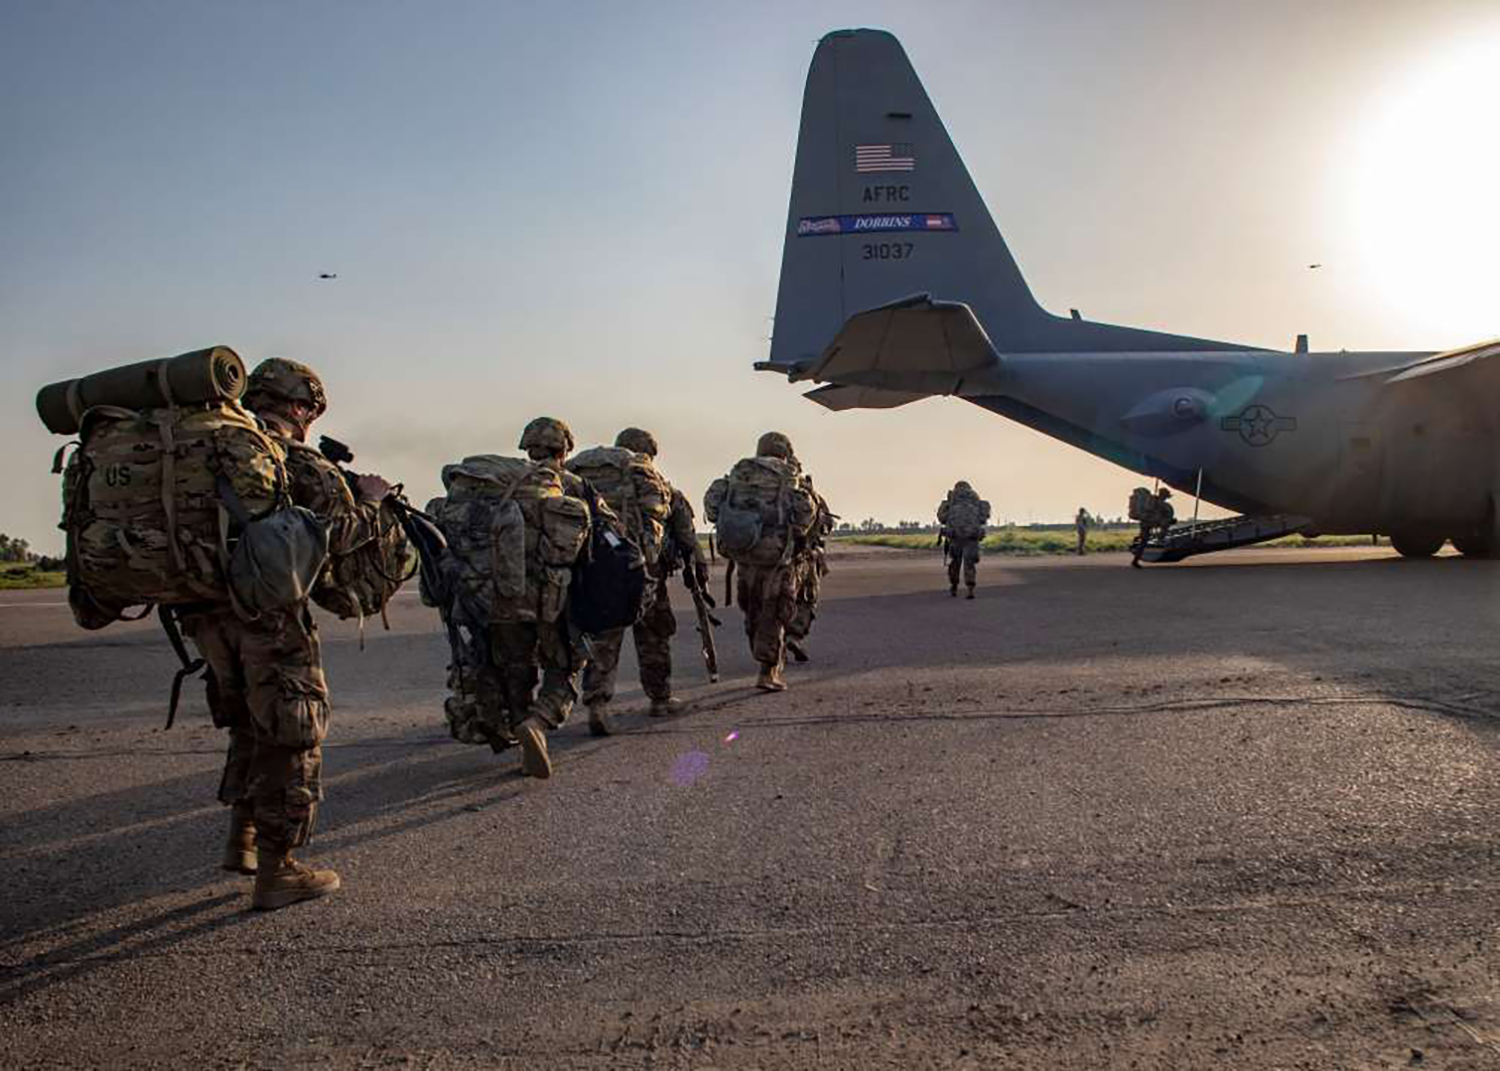 U.S. soldiers board a Lockheed C-130 Hercules at K1 Air Base in northern Iraq on March 24 preparing for the transfer of power to Iraqi forces.